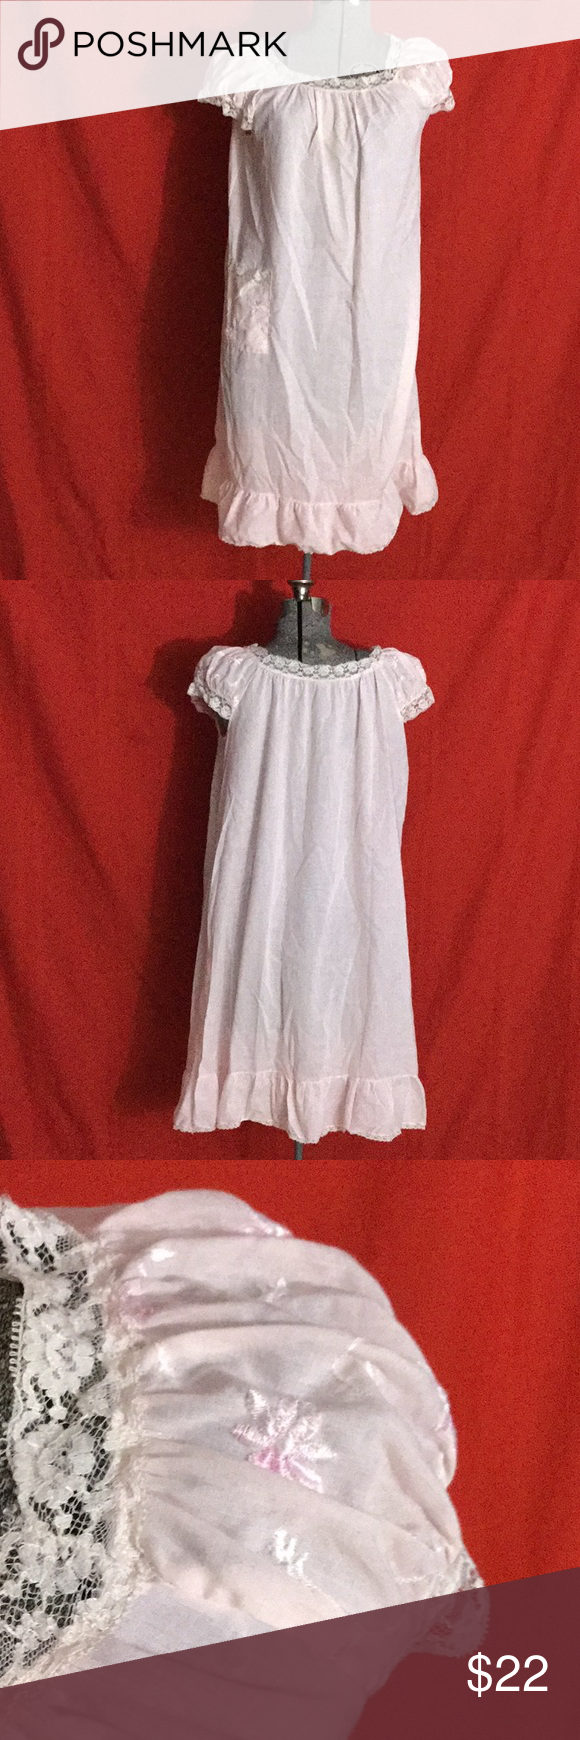 Vintage 1950s Daisy Schrank Baby Doll Nightie Baby Doll Nighties Nighty Clothes Design